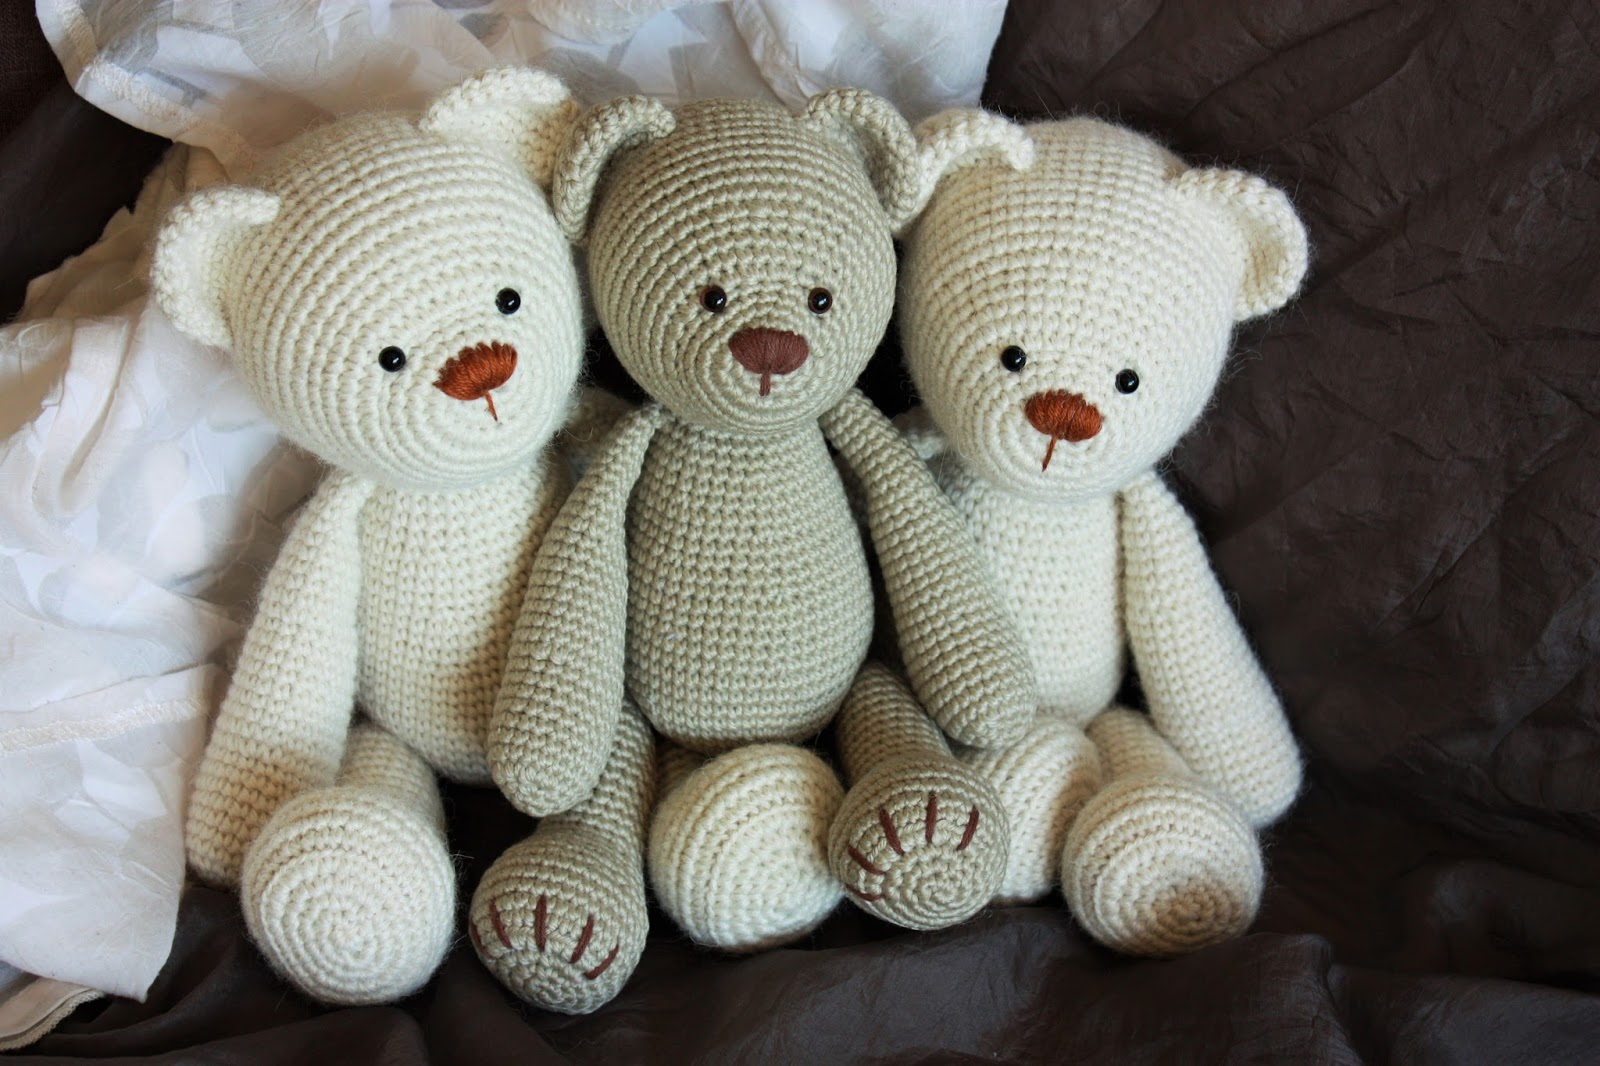 Crochet Pattern Amigurumi Bear : Happyamigurumi: Lucas the Teddy Bear Pattern: New Teddy ...